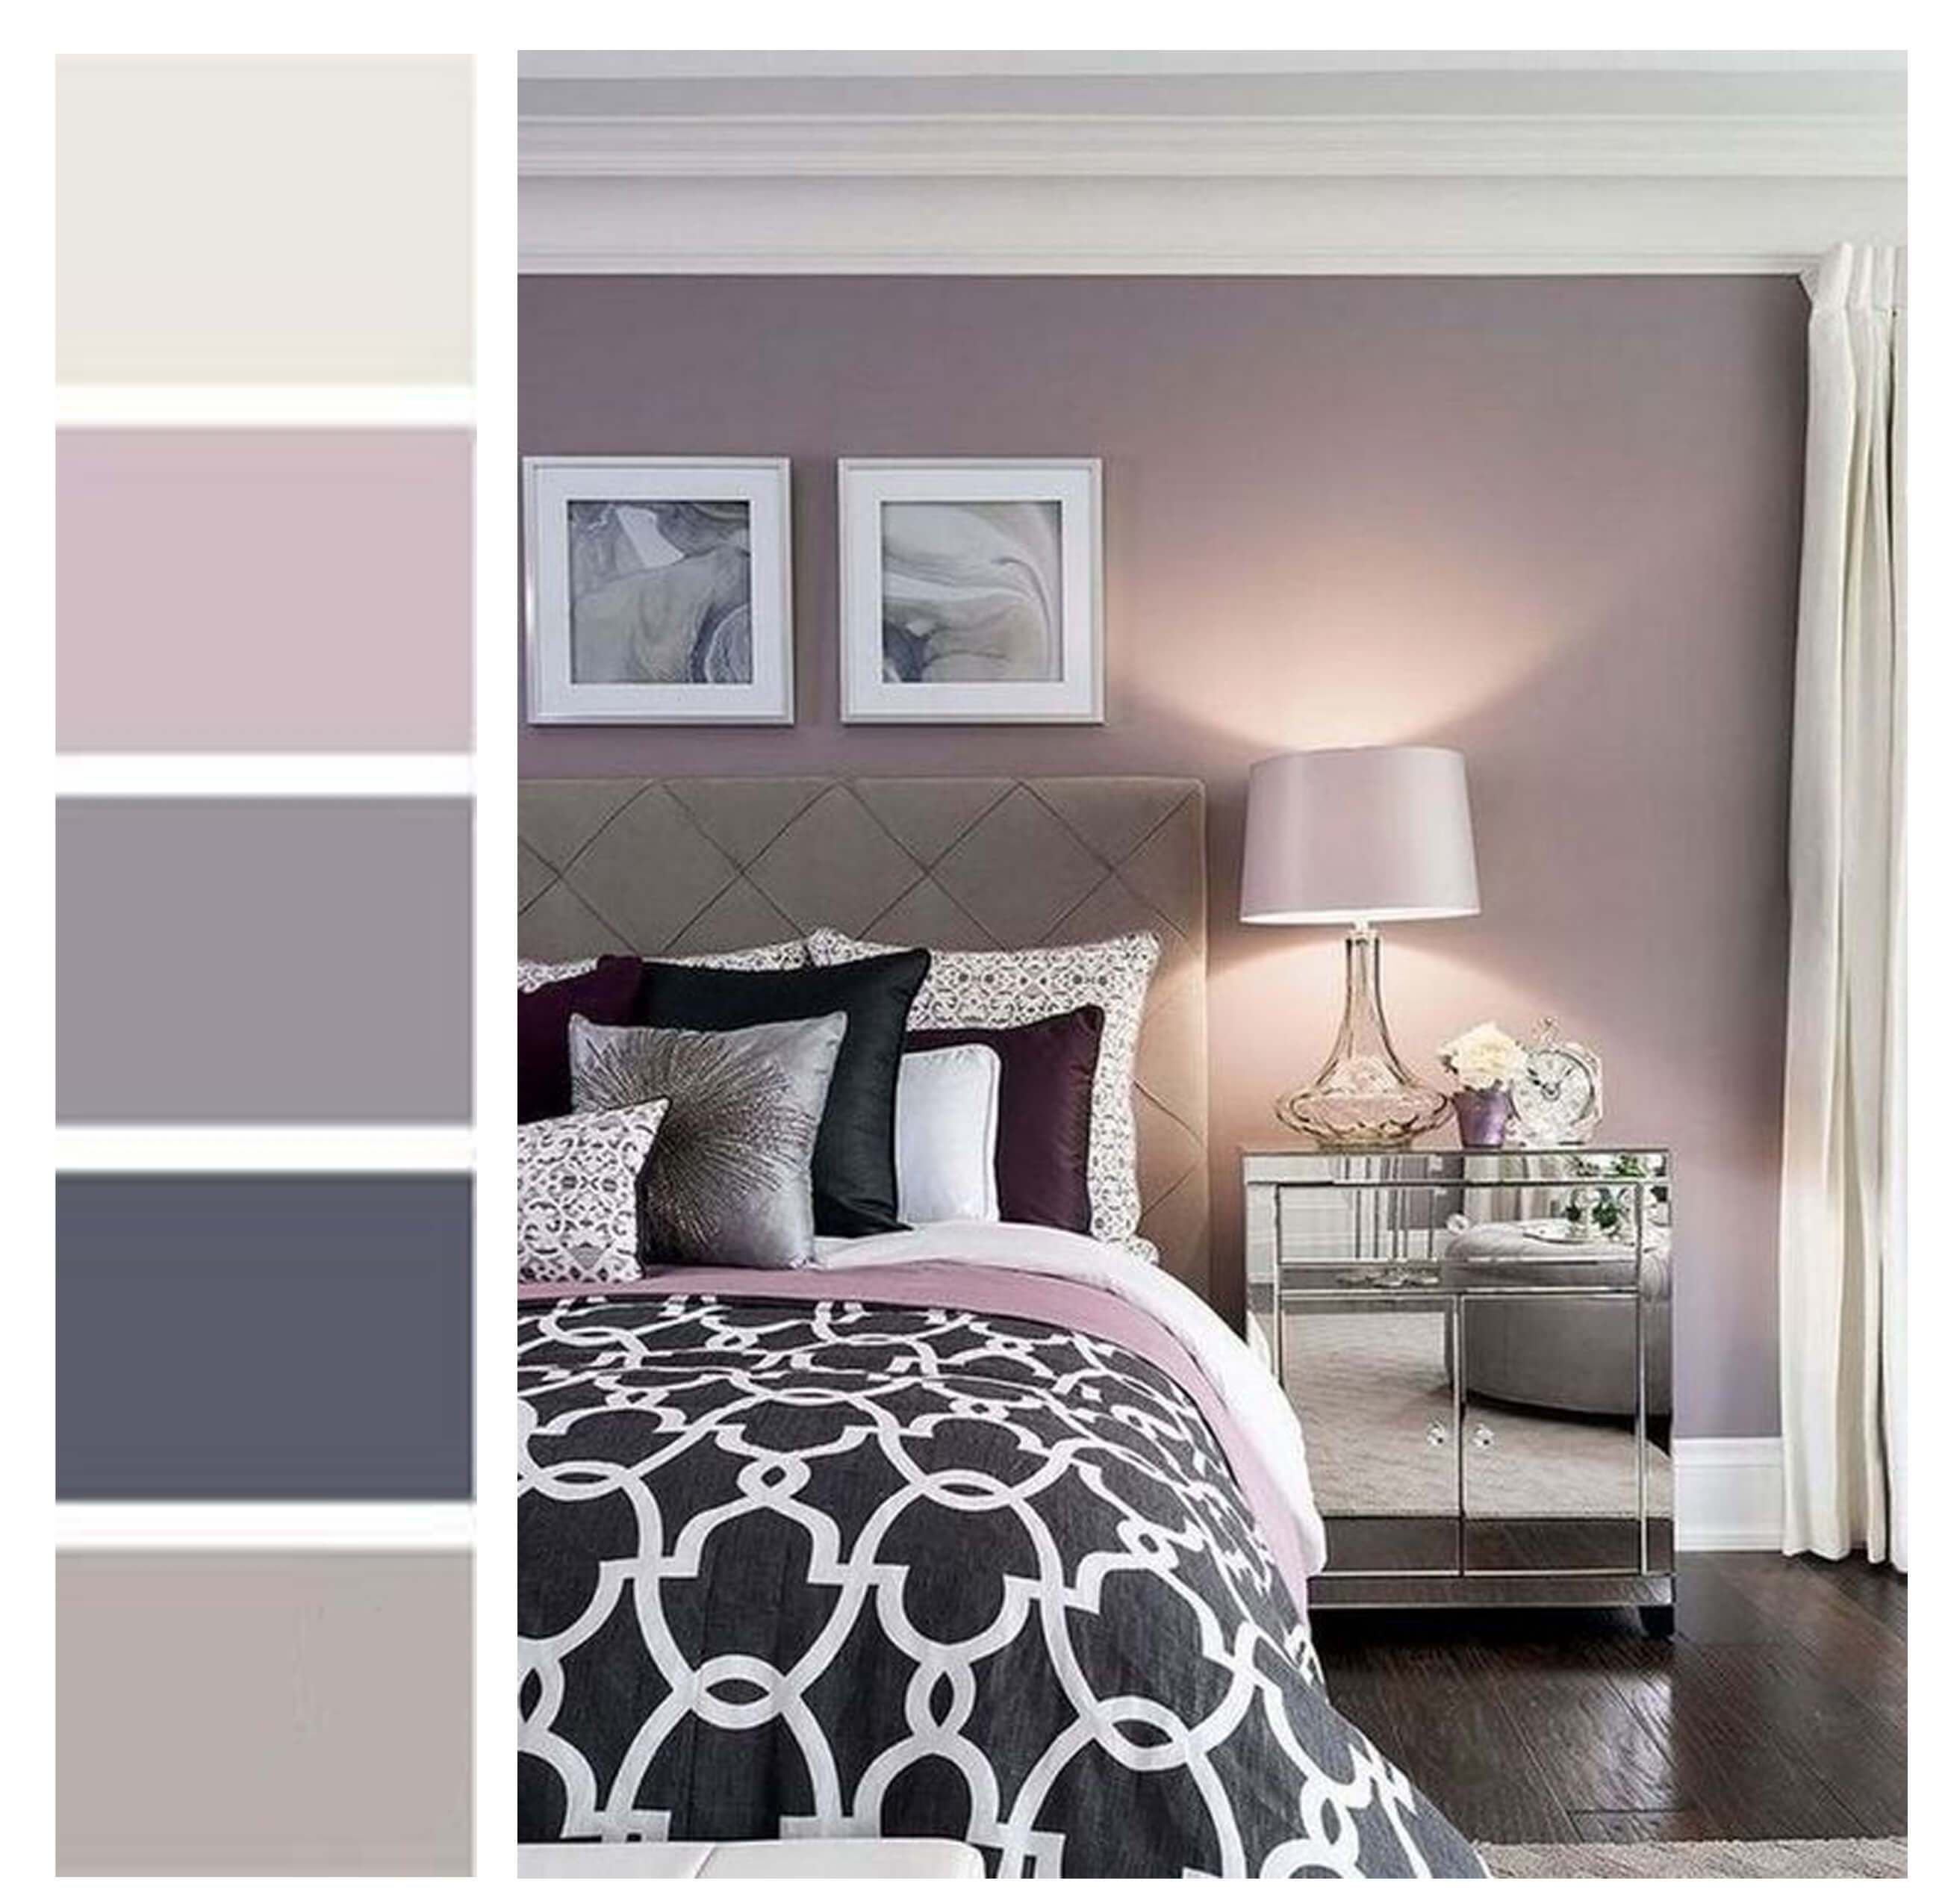 Paint Color Selection in 2020 Bedroom color schemes